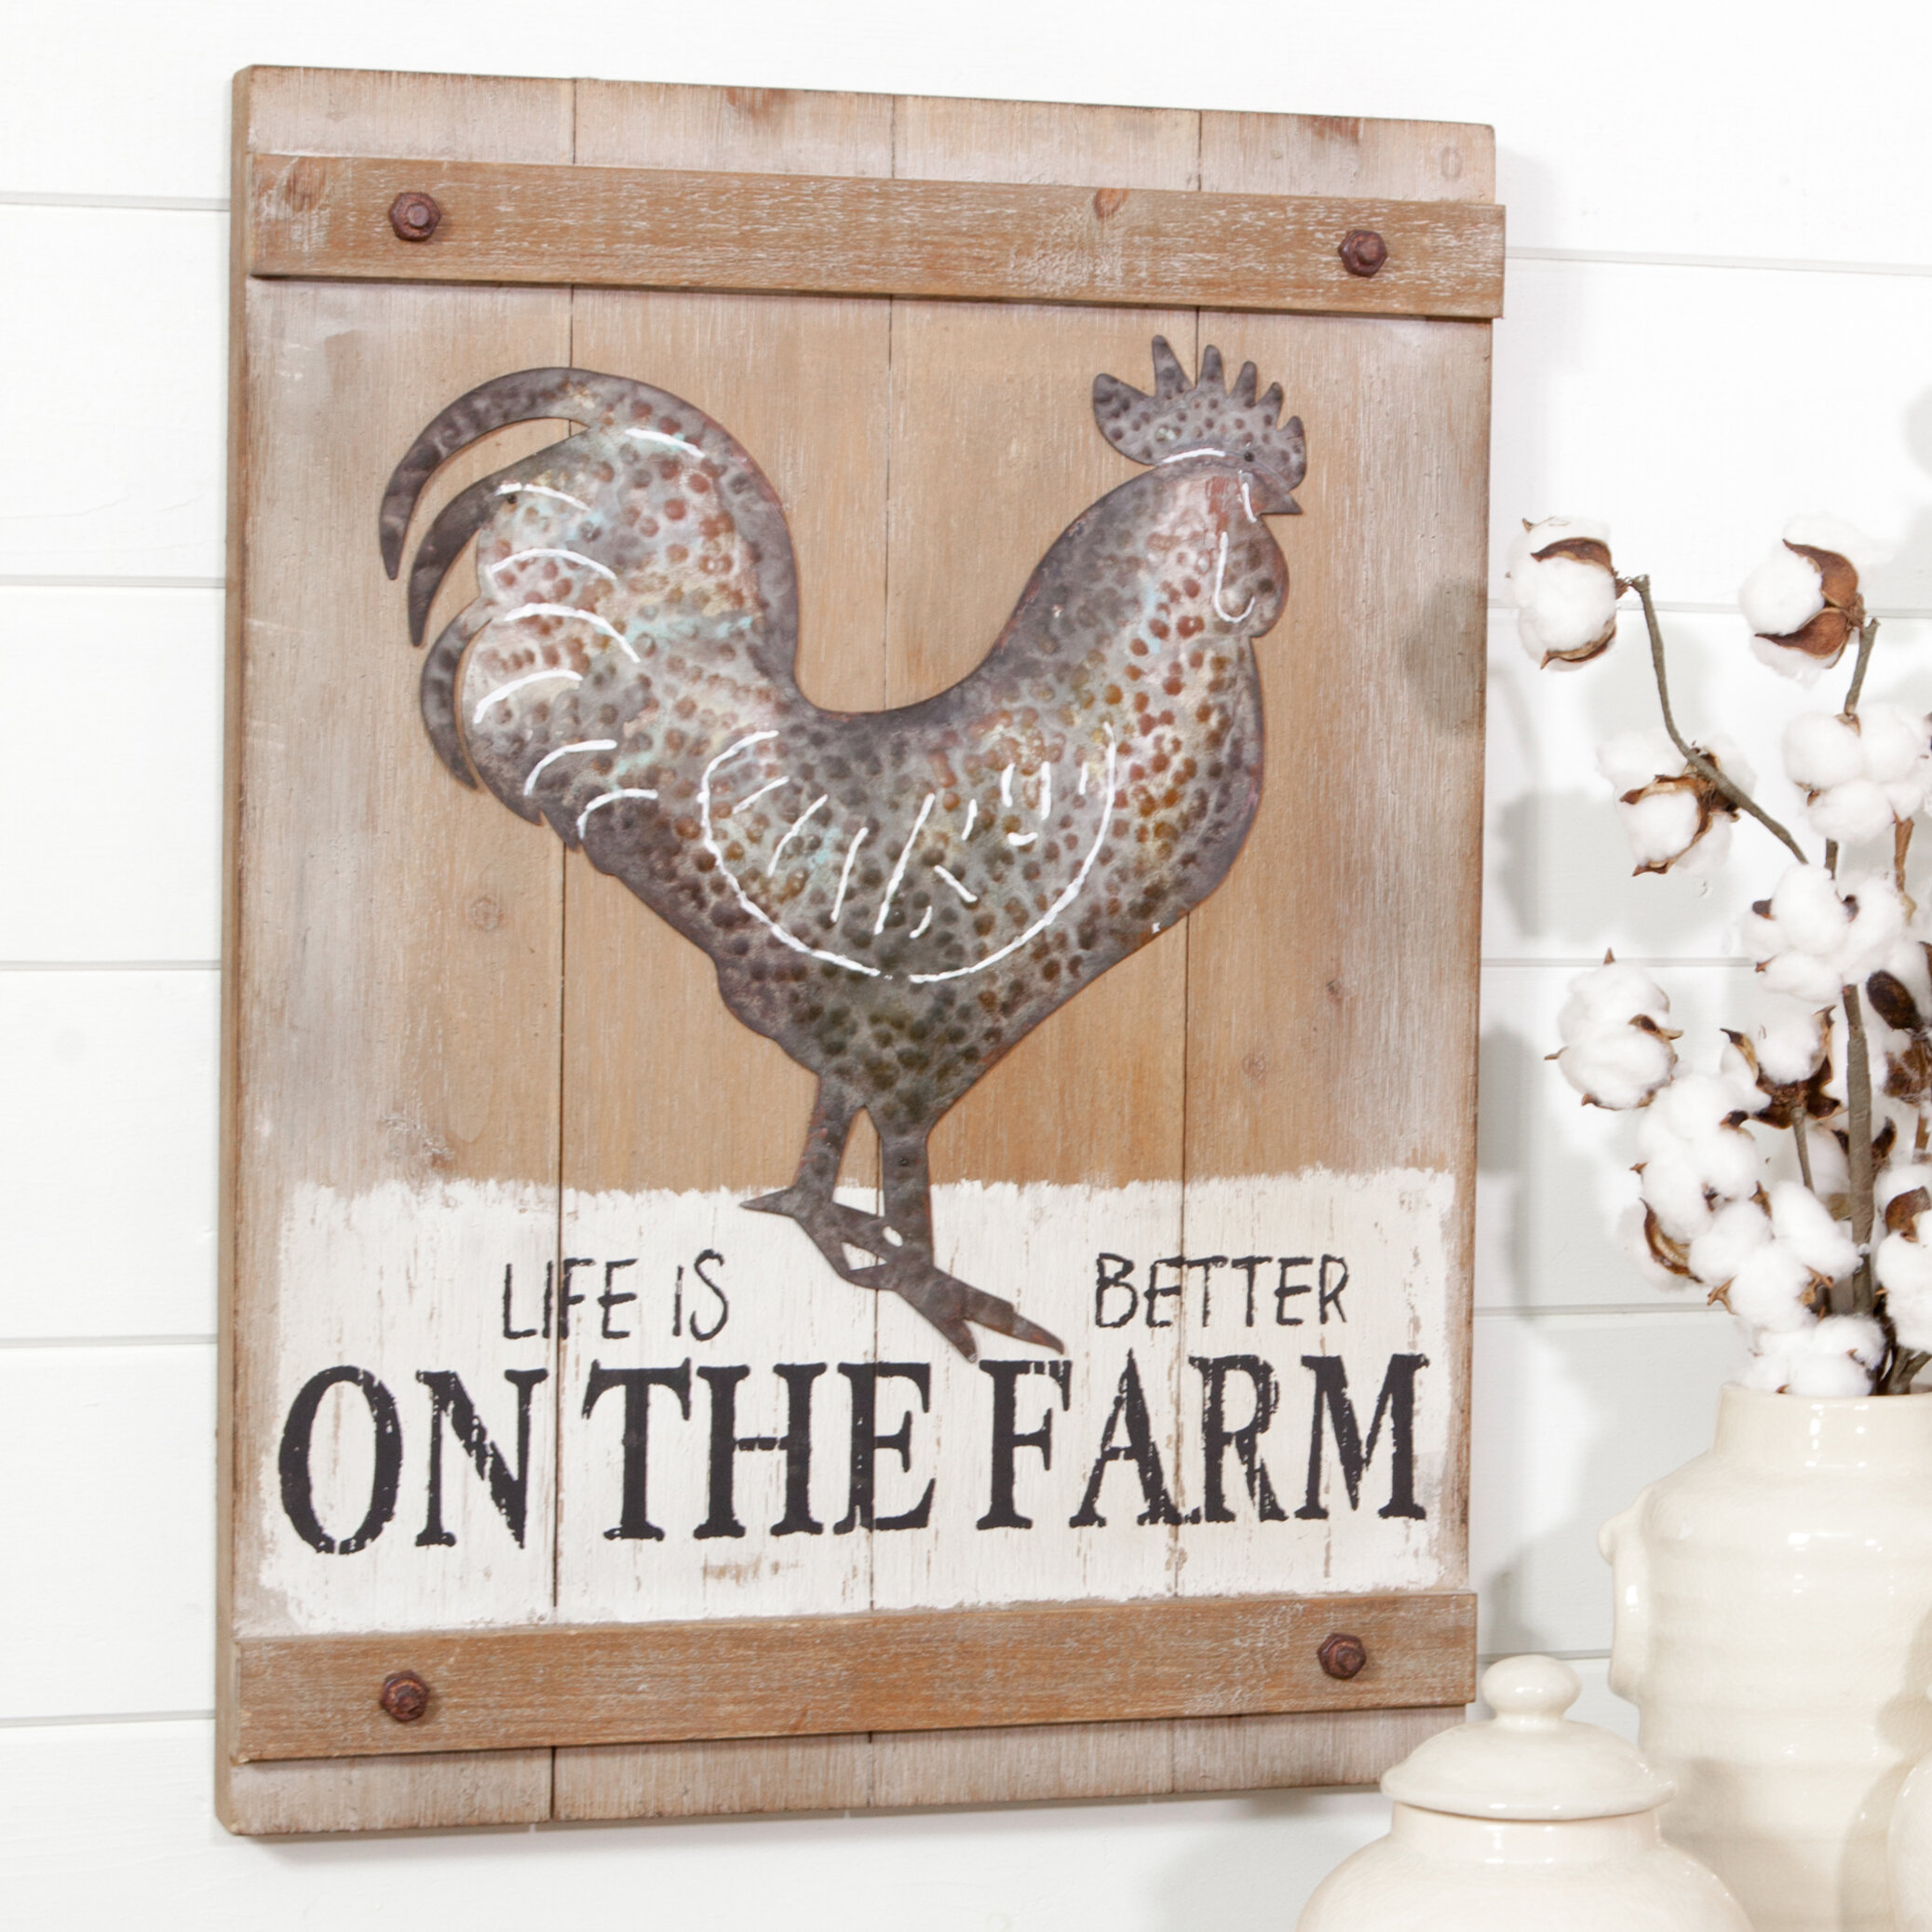 NEW~Distressed Red Sheet Metal Rooster Wall Hanging Farmhouse Decor Chicken